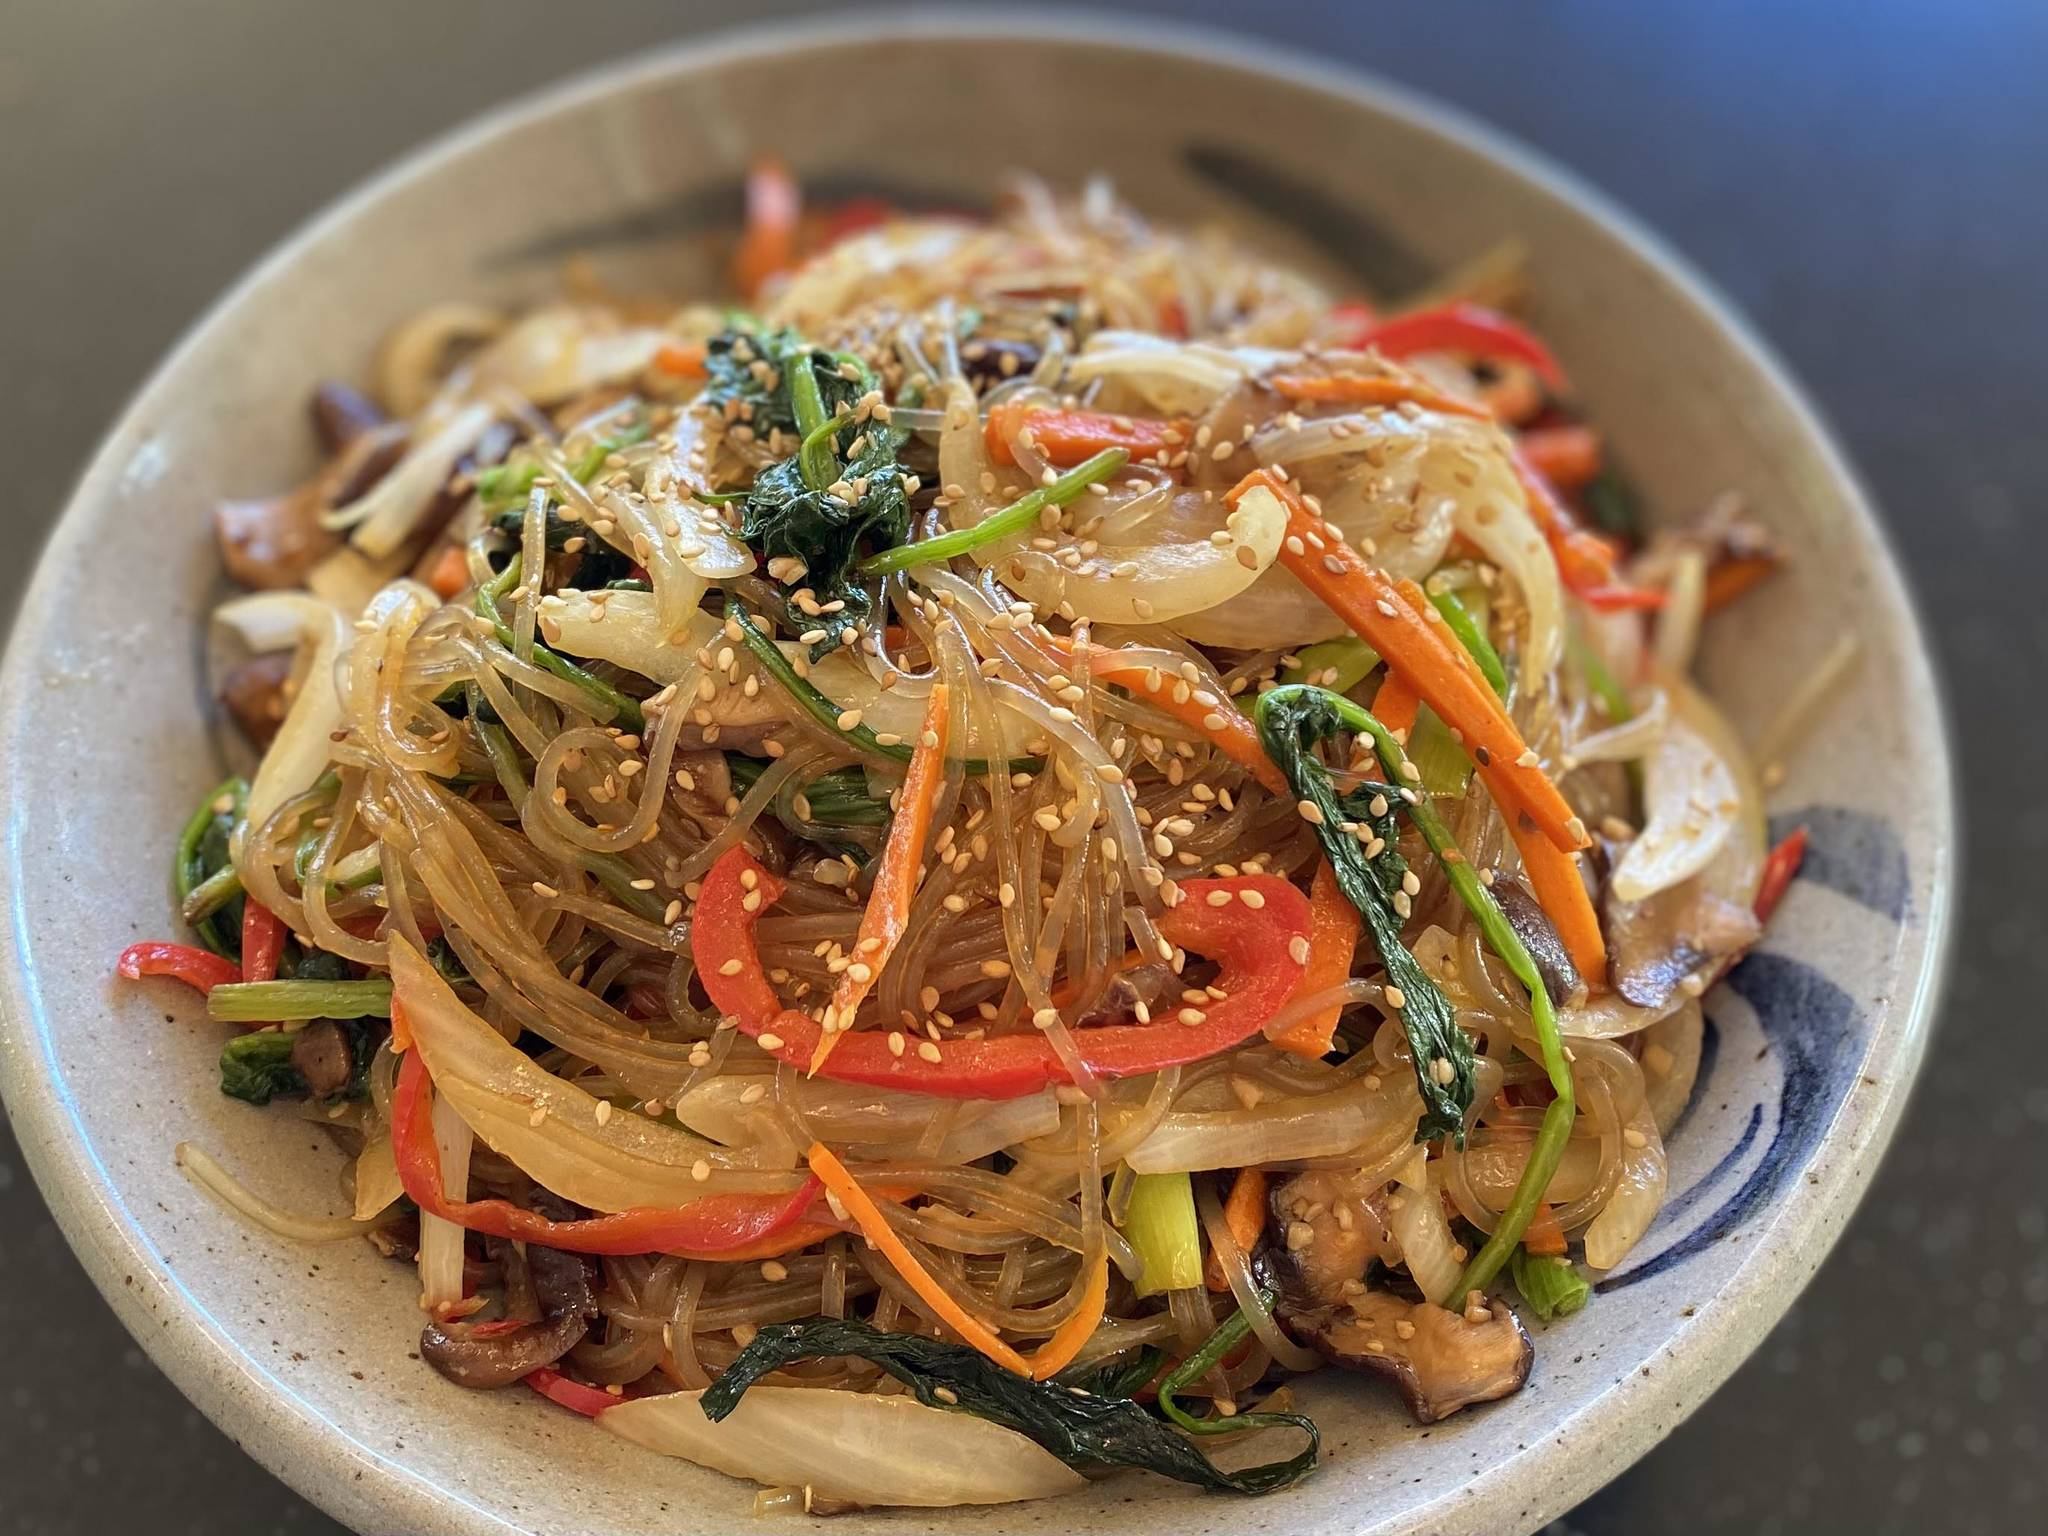 Containing onions, carrots, shitake mushrooms and noodles Japchae is a stir-fried Korean vegetable and noodle dish that is delectable hot, cold and everywhere in between. (Photo by Tressa Dale/Peninsula Clarion)